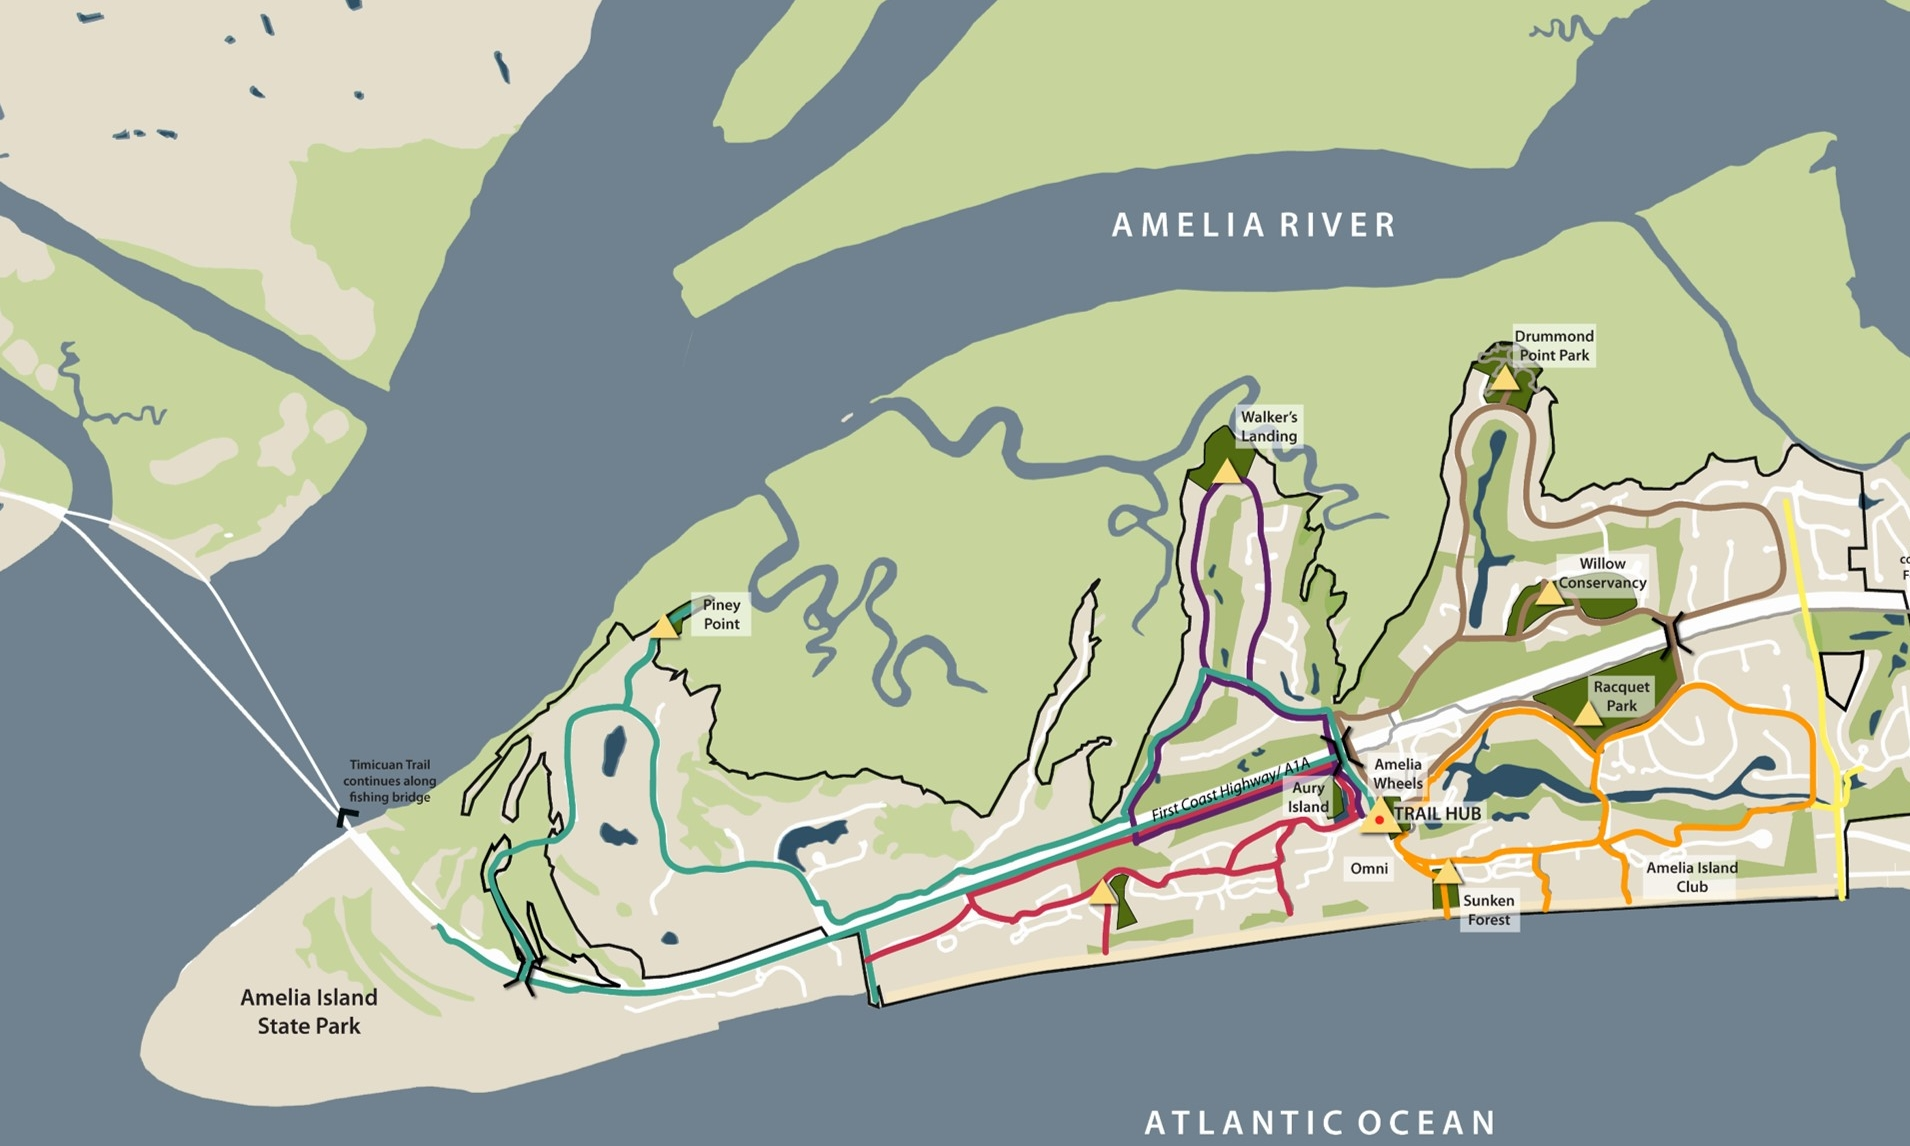 map of amelia island      4K Pictures   4K Pictures  Full HQ Wallpaper      Fernandina Beach amelia island map Amelia Surf Racquet Club Amelia  Island Map Fernandina Beach Florida FL profile population Fernandina Beach  Florida